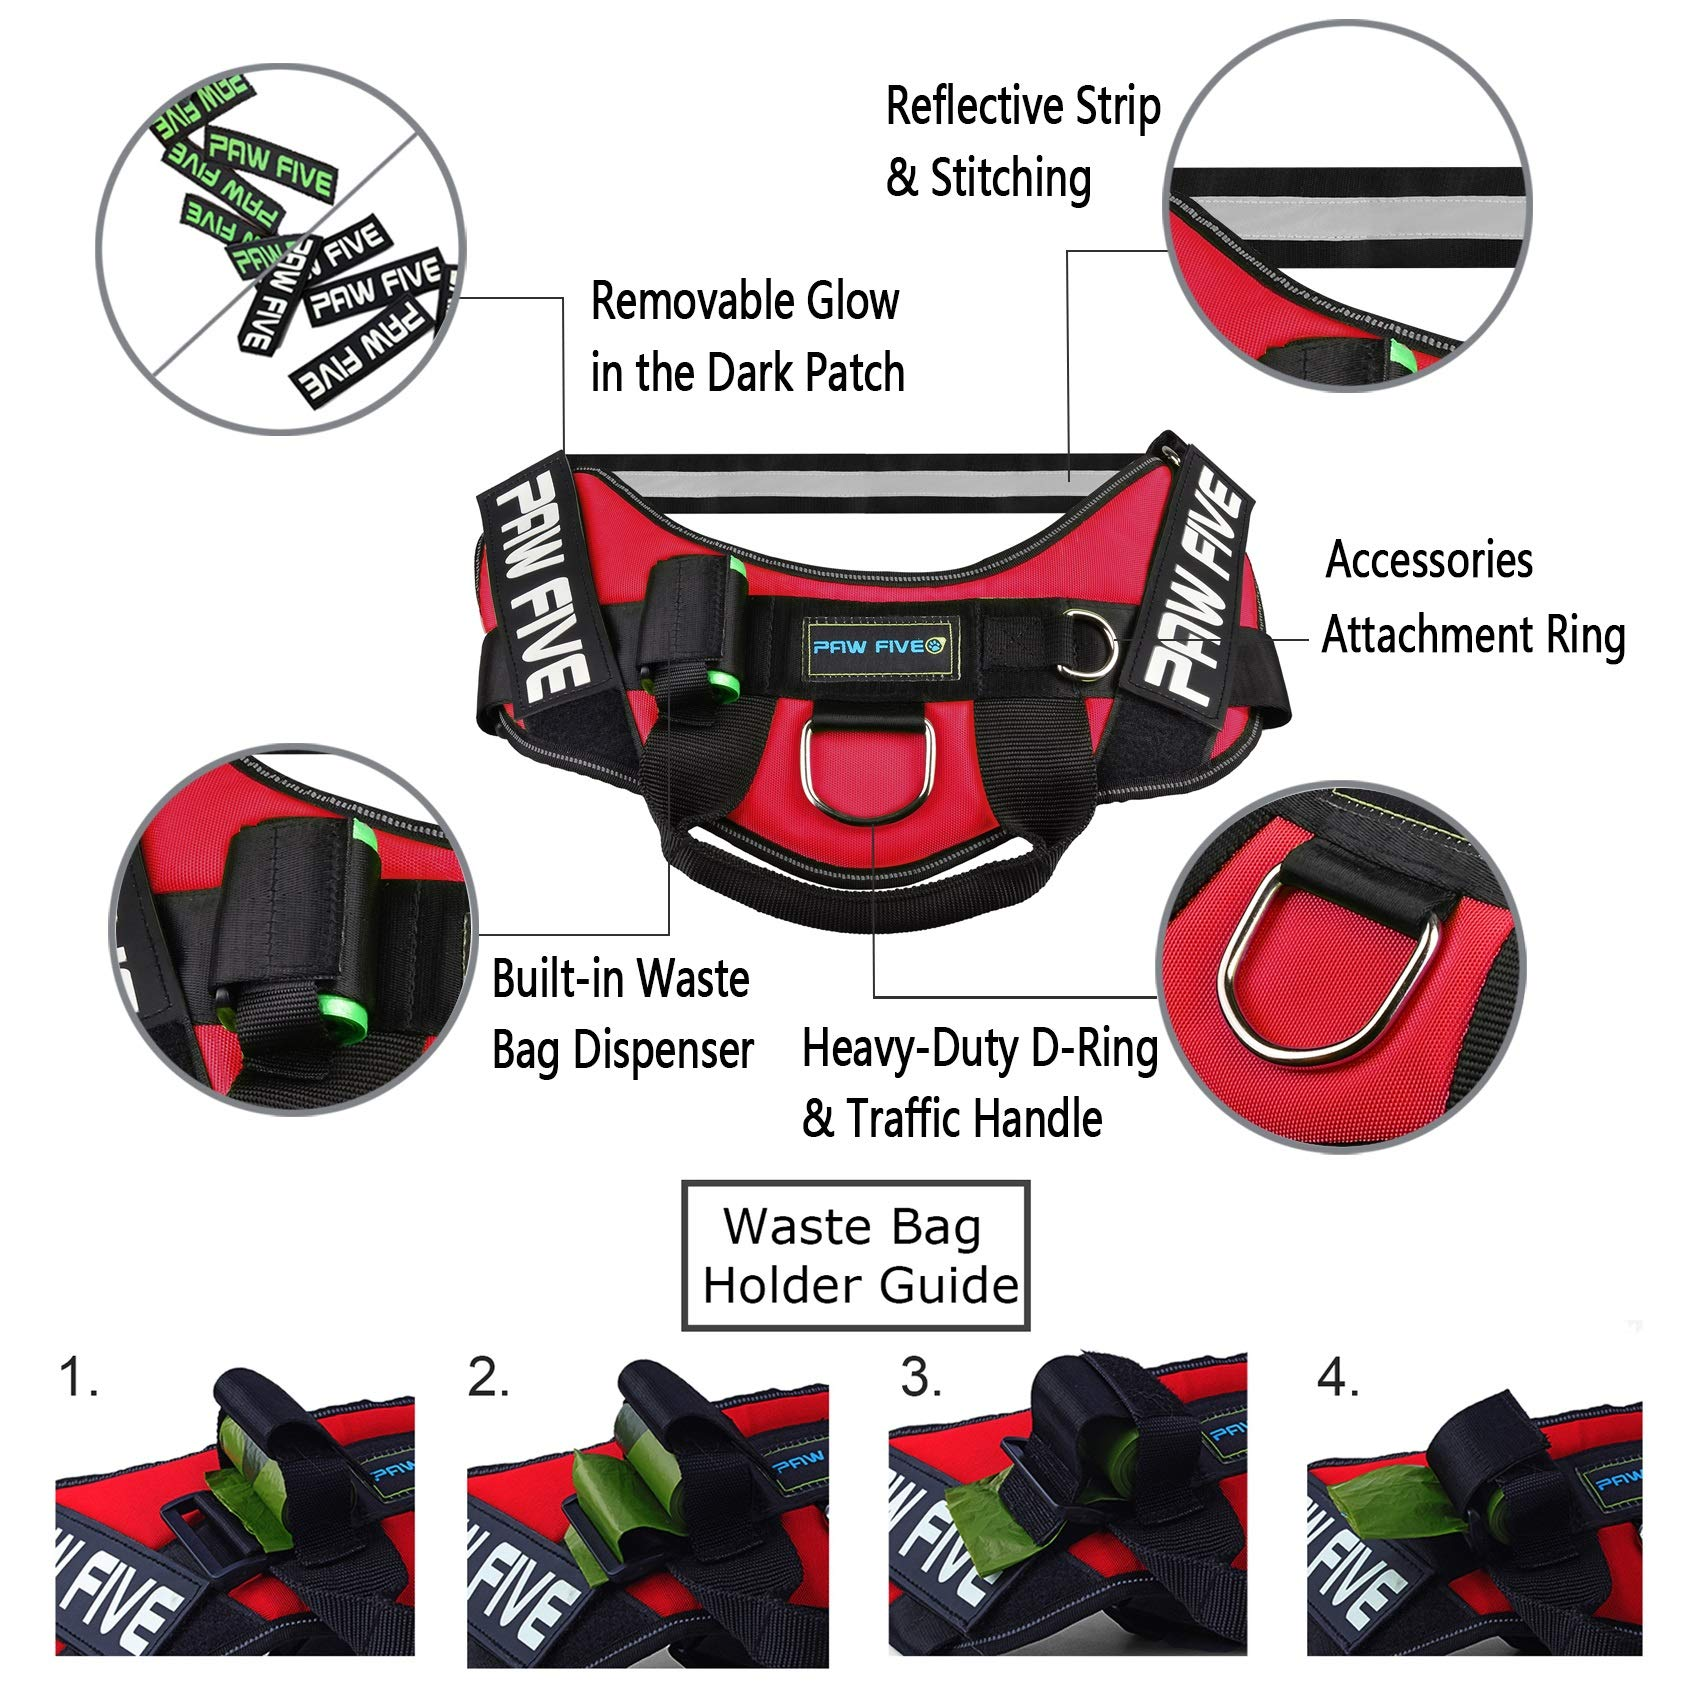 Paw Five CORE-1 Reflective Dog Harness with Built-in Waste Bag Dispenser Adjustable Padded No-Pull Easy Walk Control for Medium and Large Dogs, Check Sizing Chart Before Ordering (Medium, Lava Red) by Paw Five (Image #6)